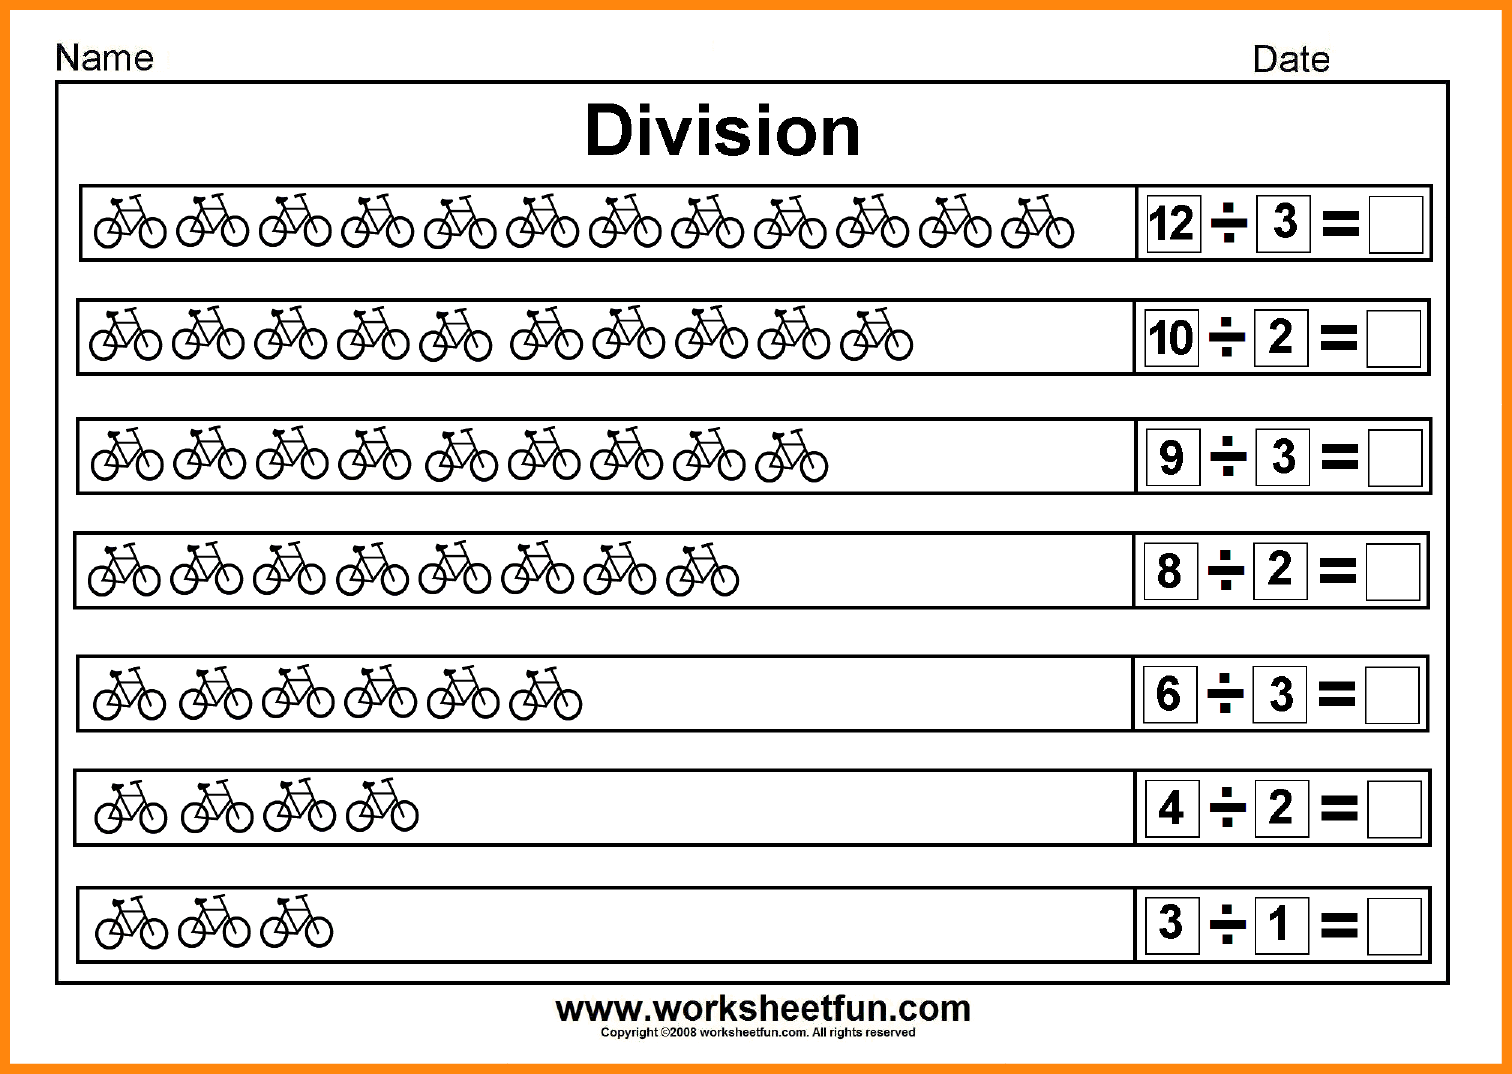 Beginner Division Worksheets